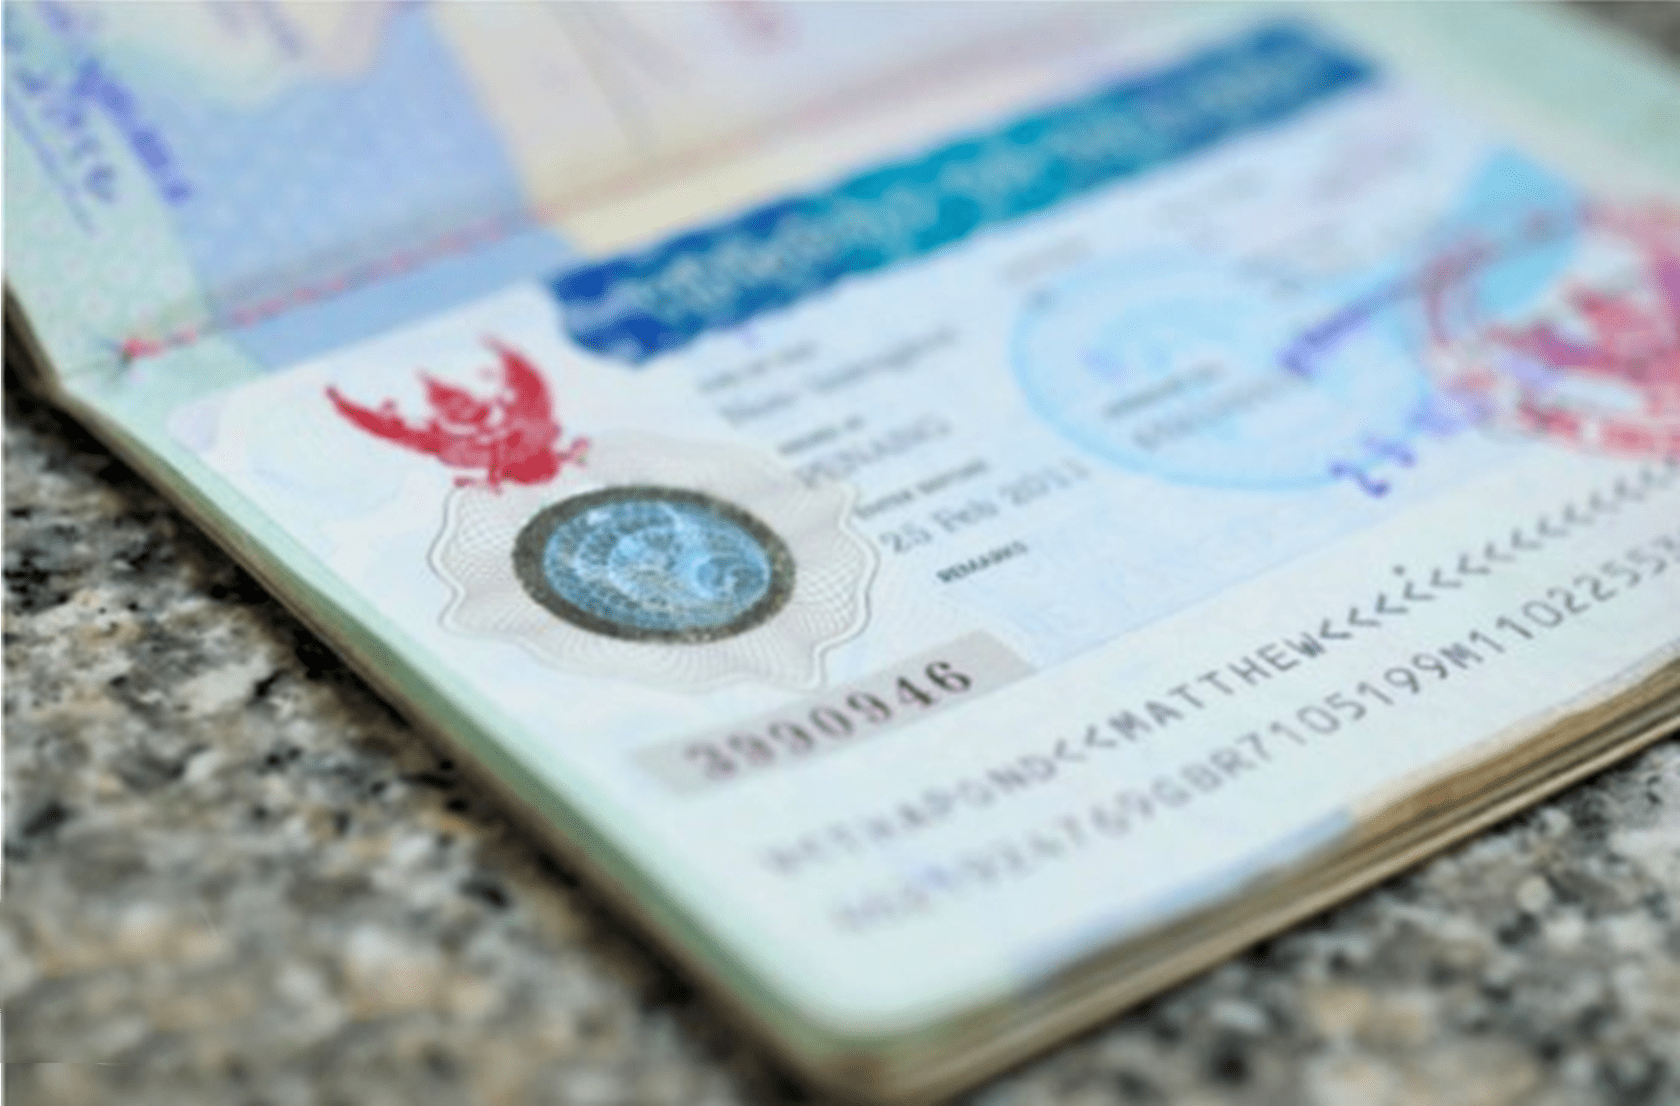 Smart visa available from February 1 | The Thaiger